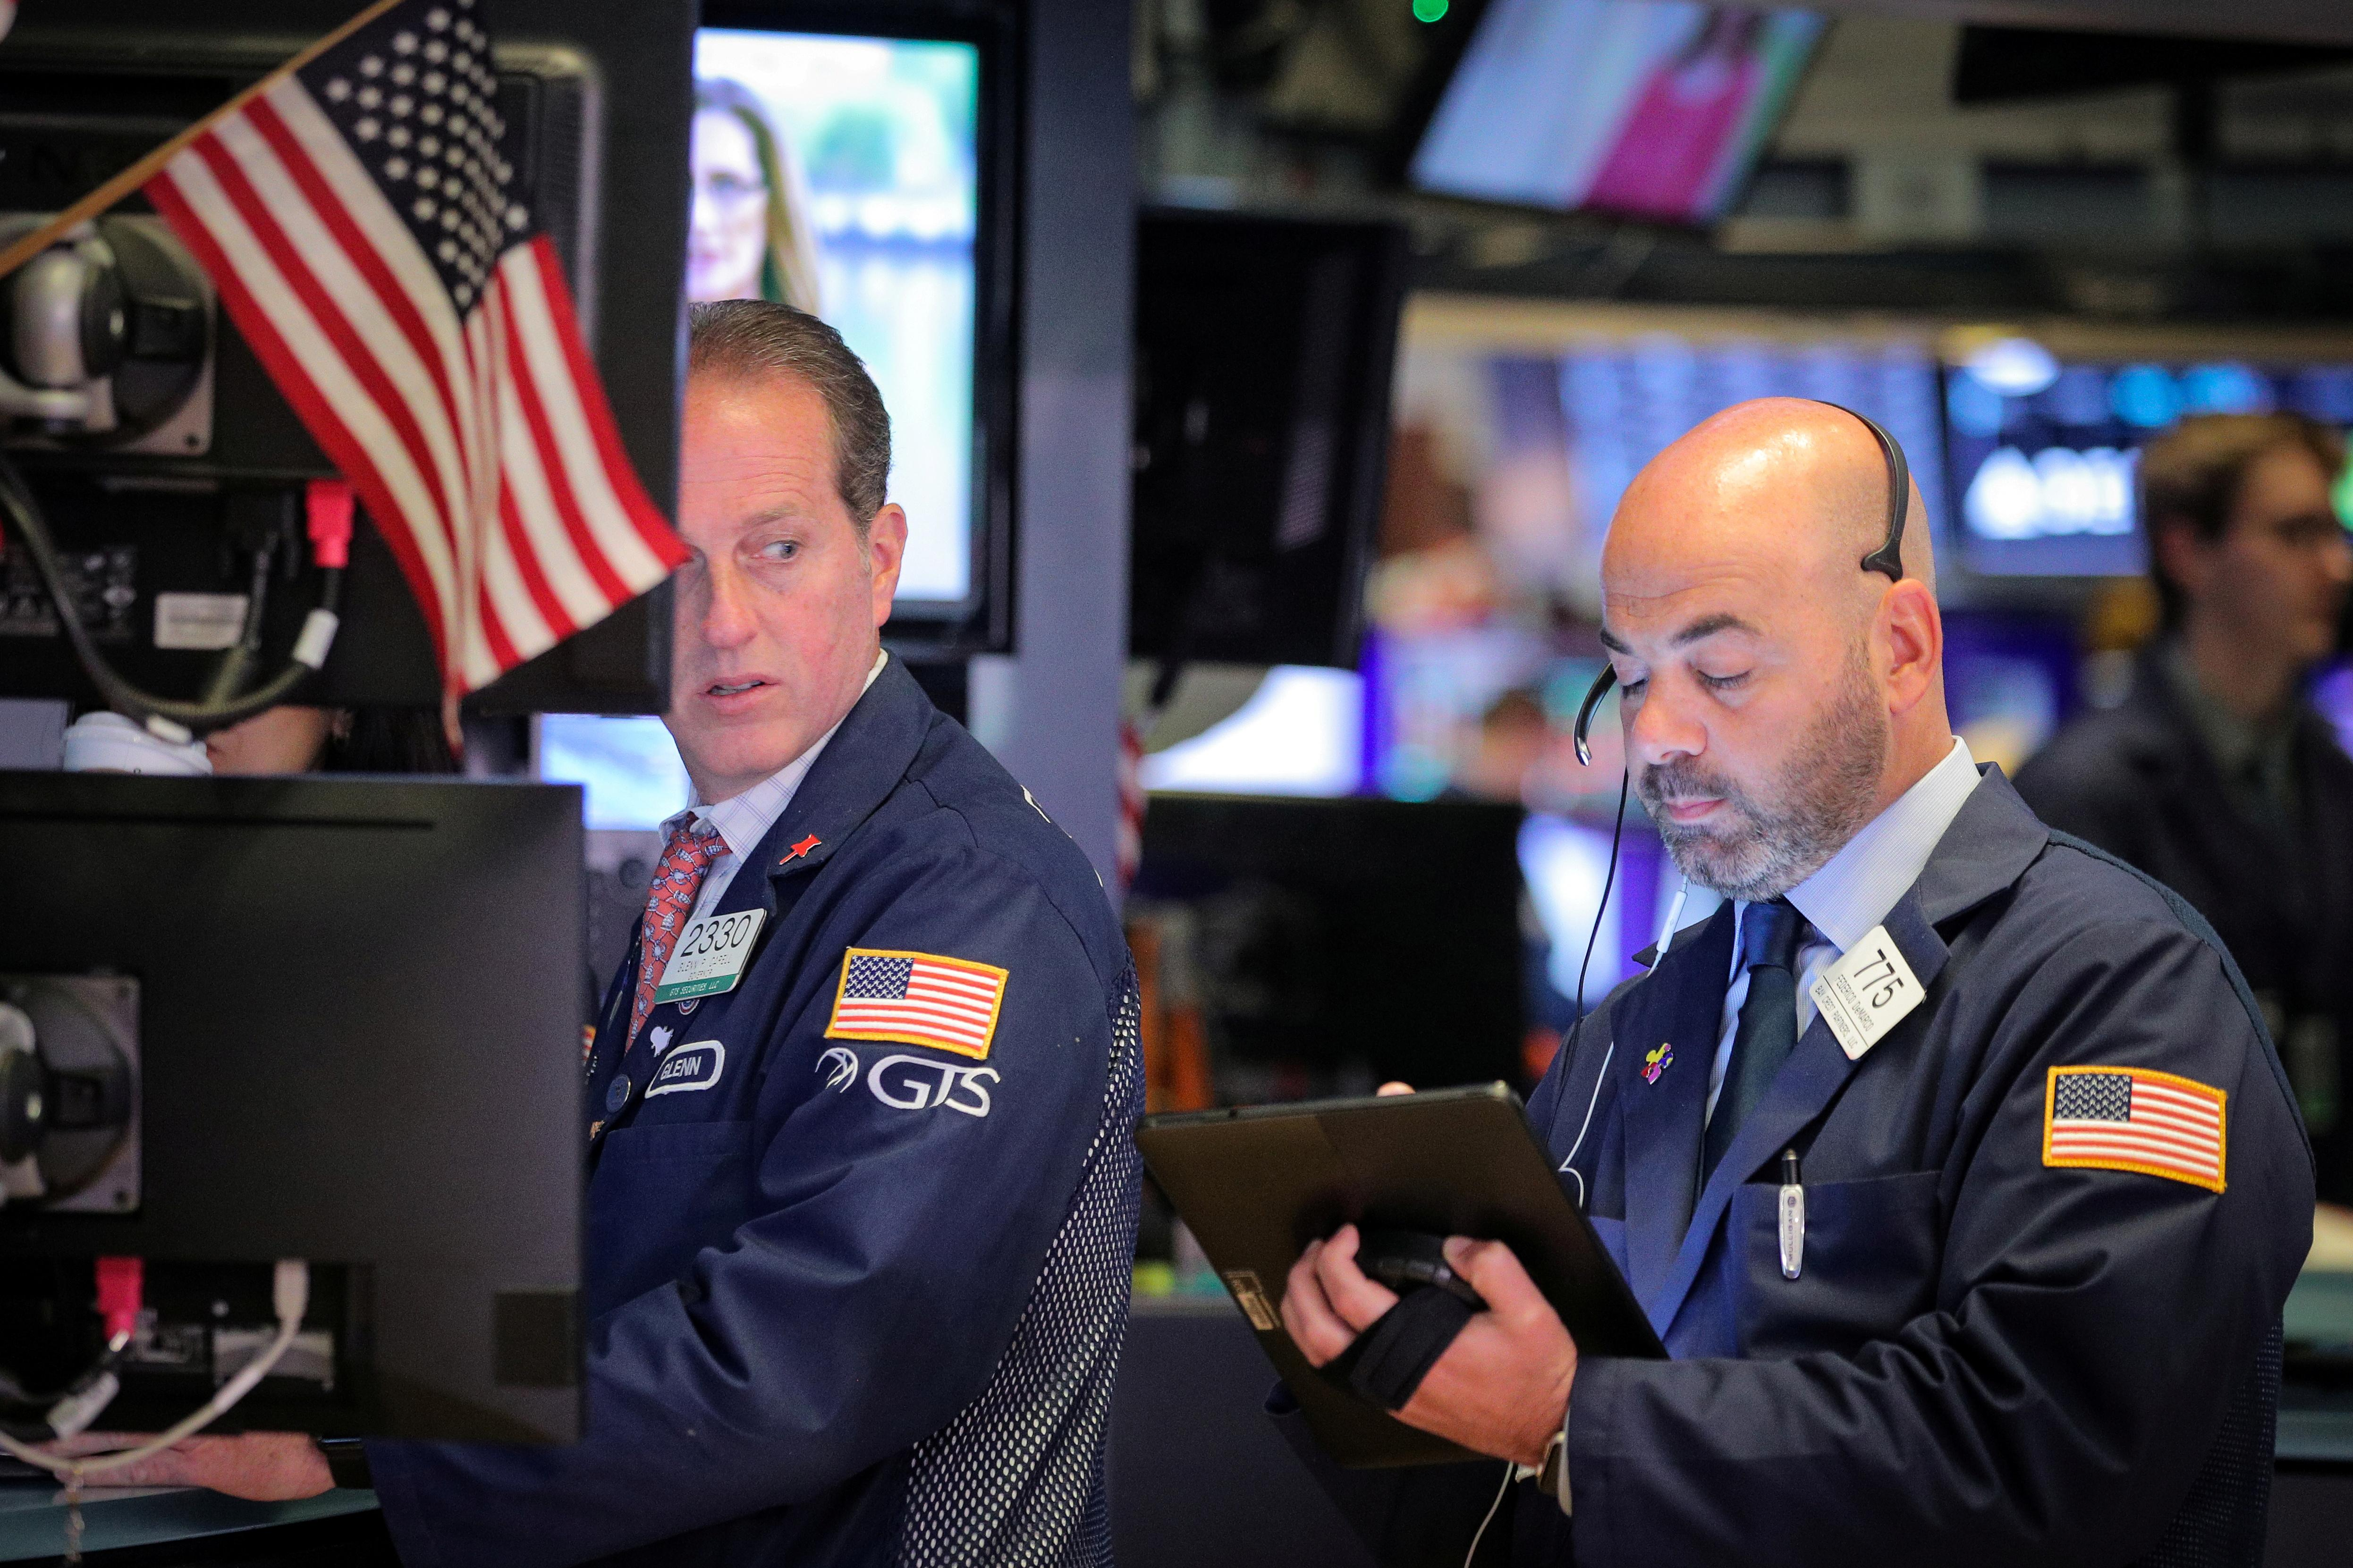 Shares in big banks climb as Fed approves capital plans